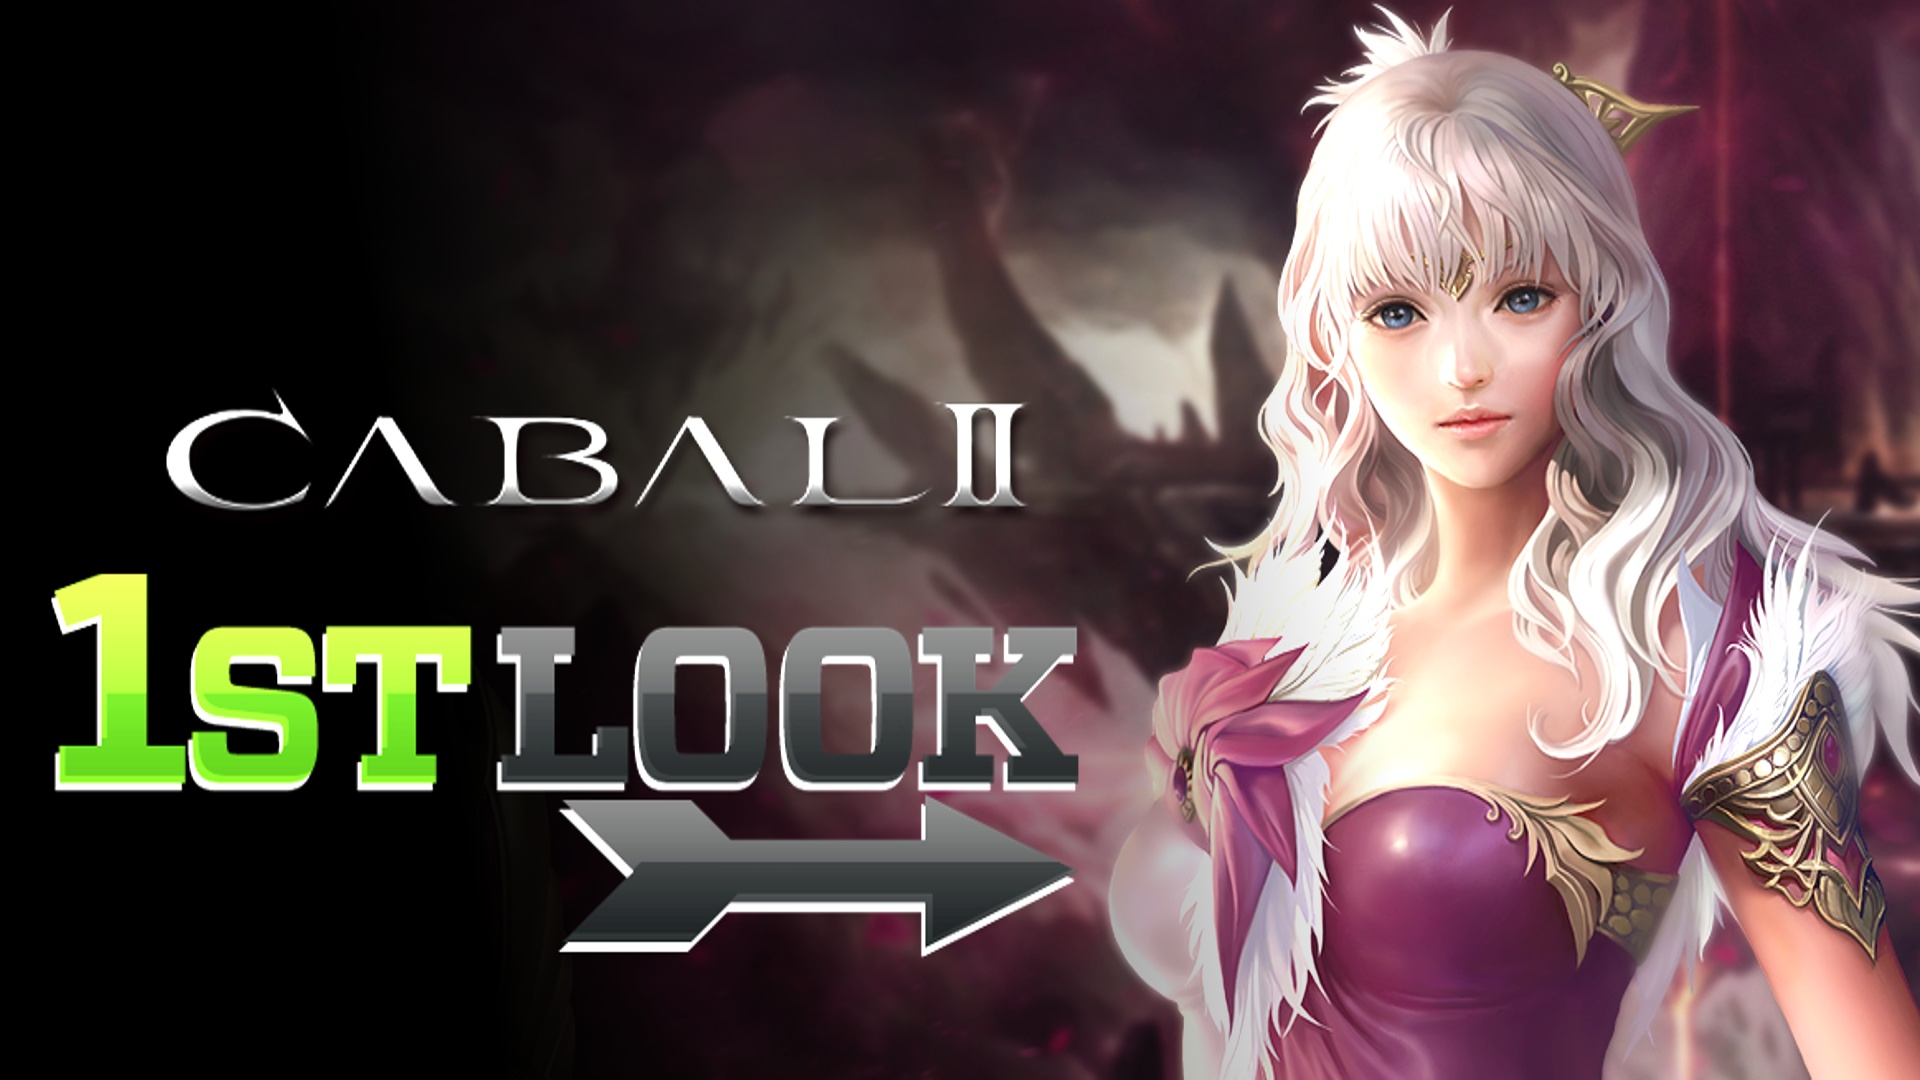 Cabal online 2 release date in Melbourne